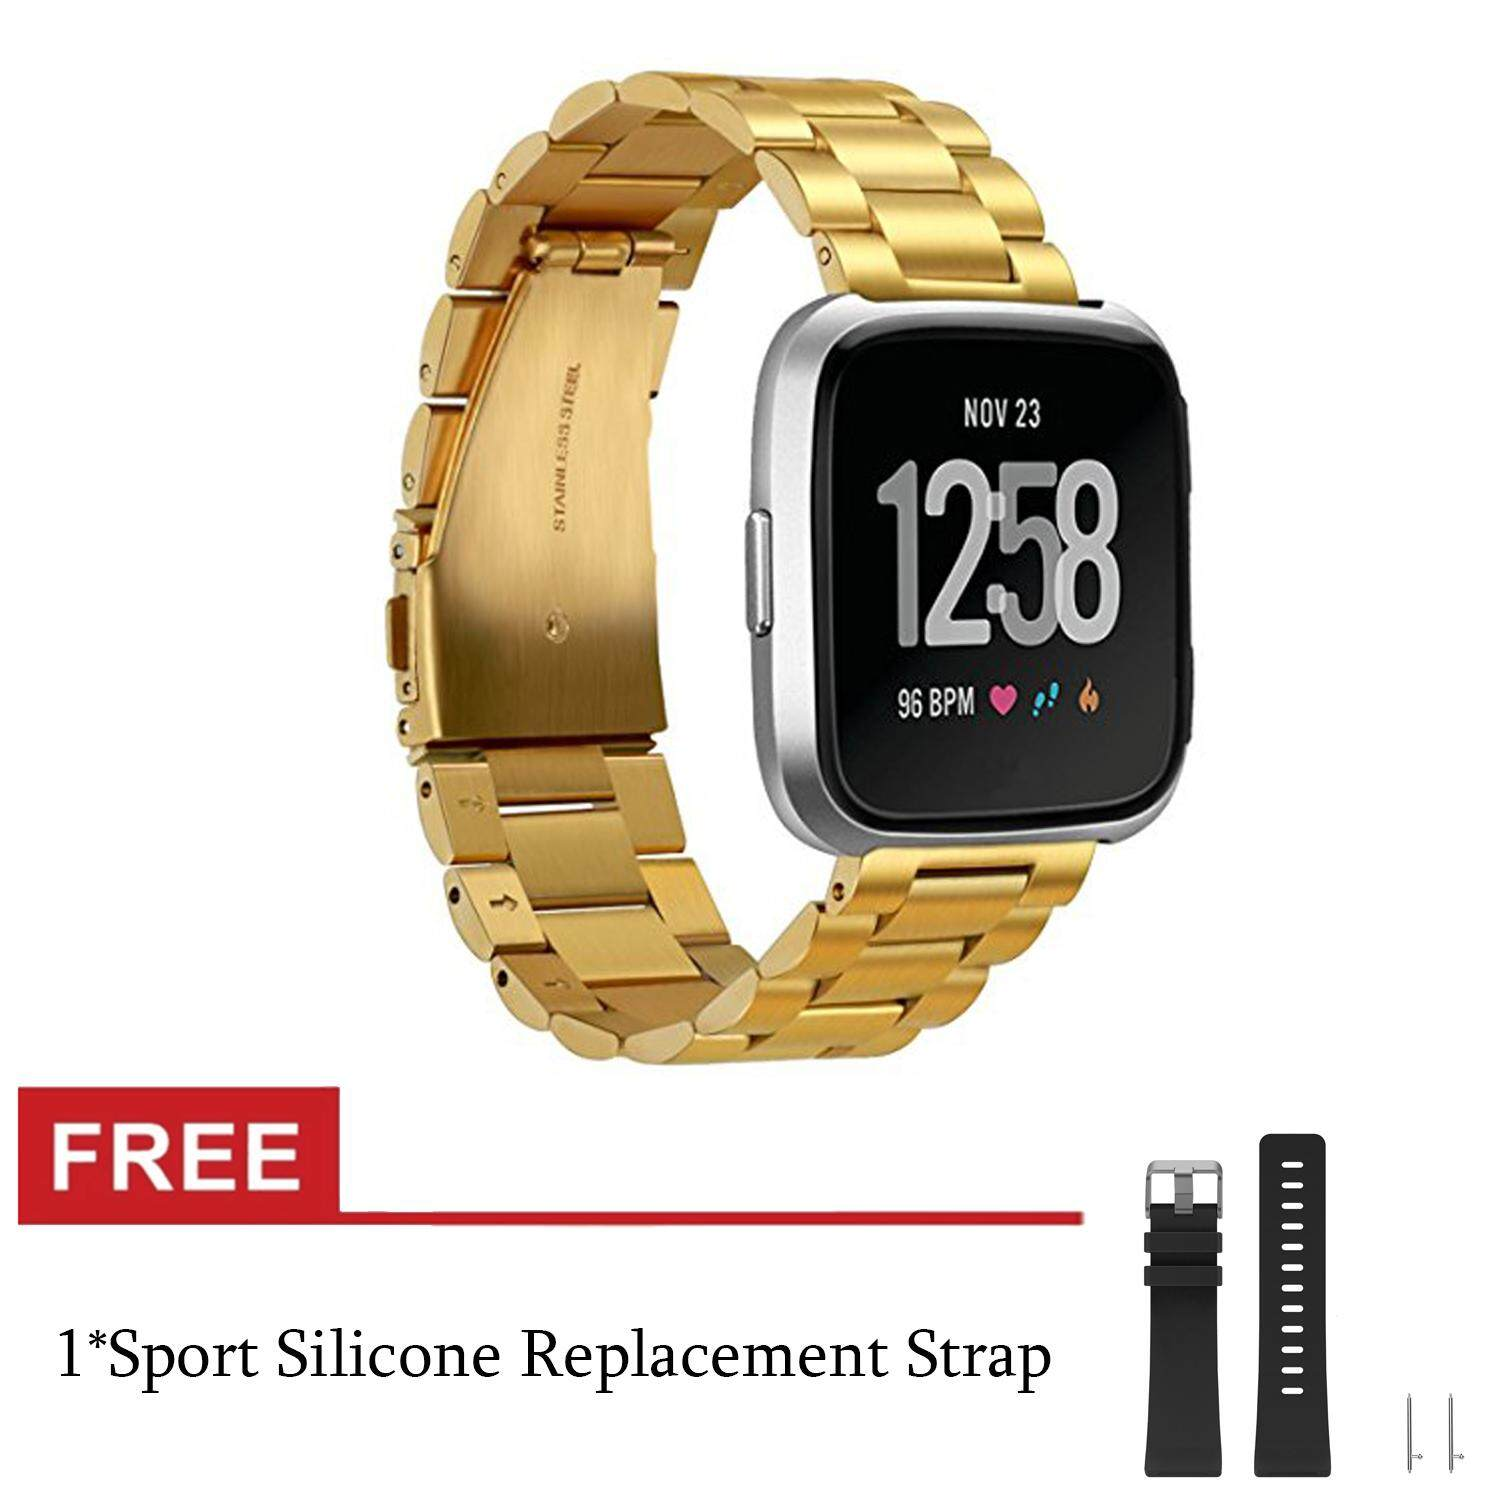 Fitbit Versa Bands, Stainless Steel Metal Band Fitbit Versa Strap Replacement Bracelet Accessories Wristbands for